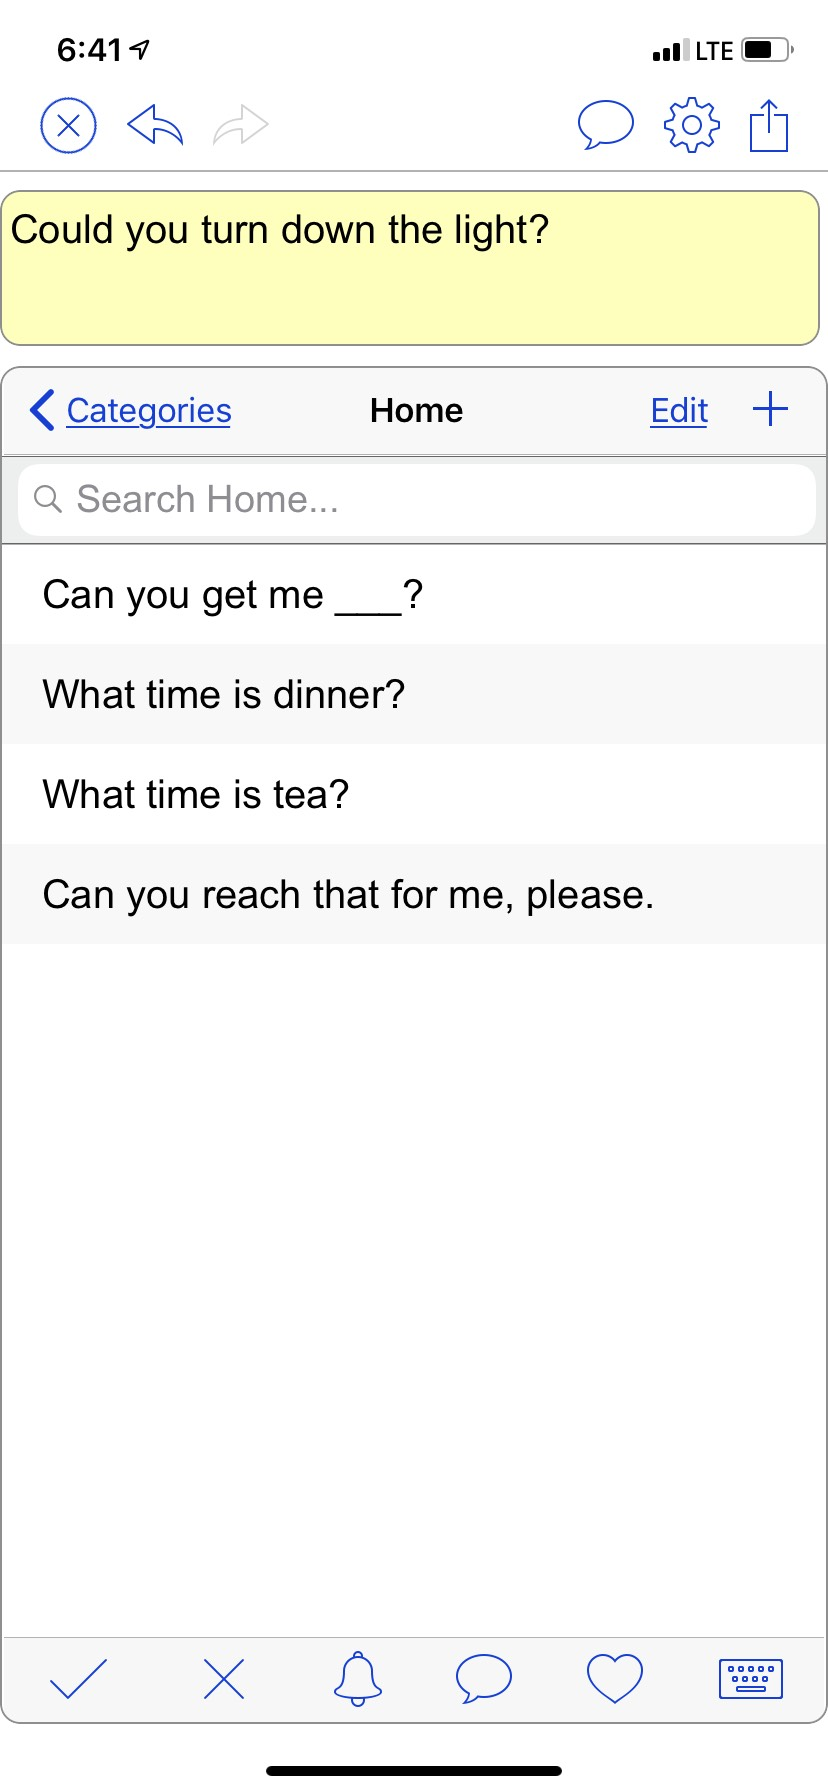 screenshot of the Home board with questions such as: Can you get me ___? What time is dinner? What time is tea? Can you reach that for me? etc.